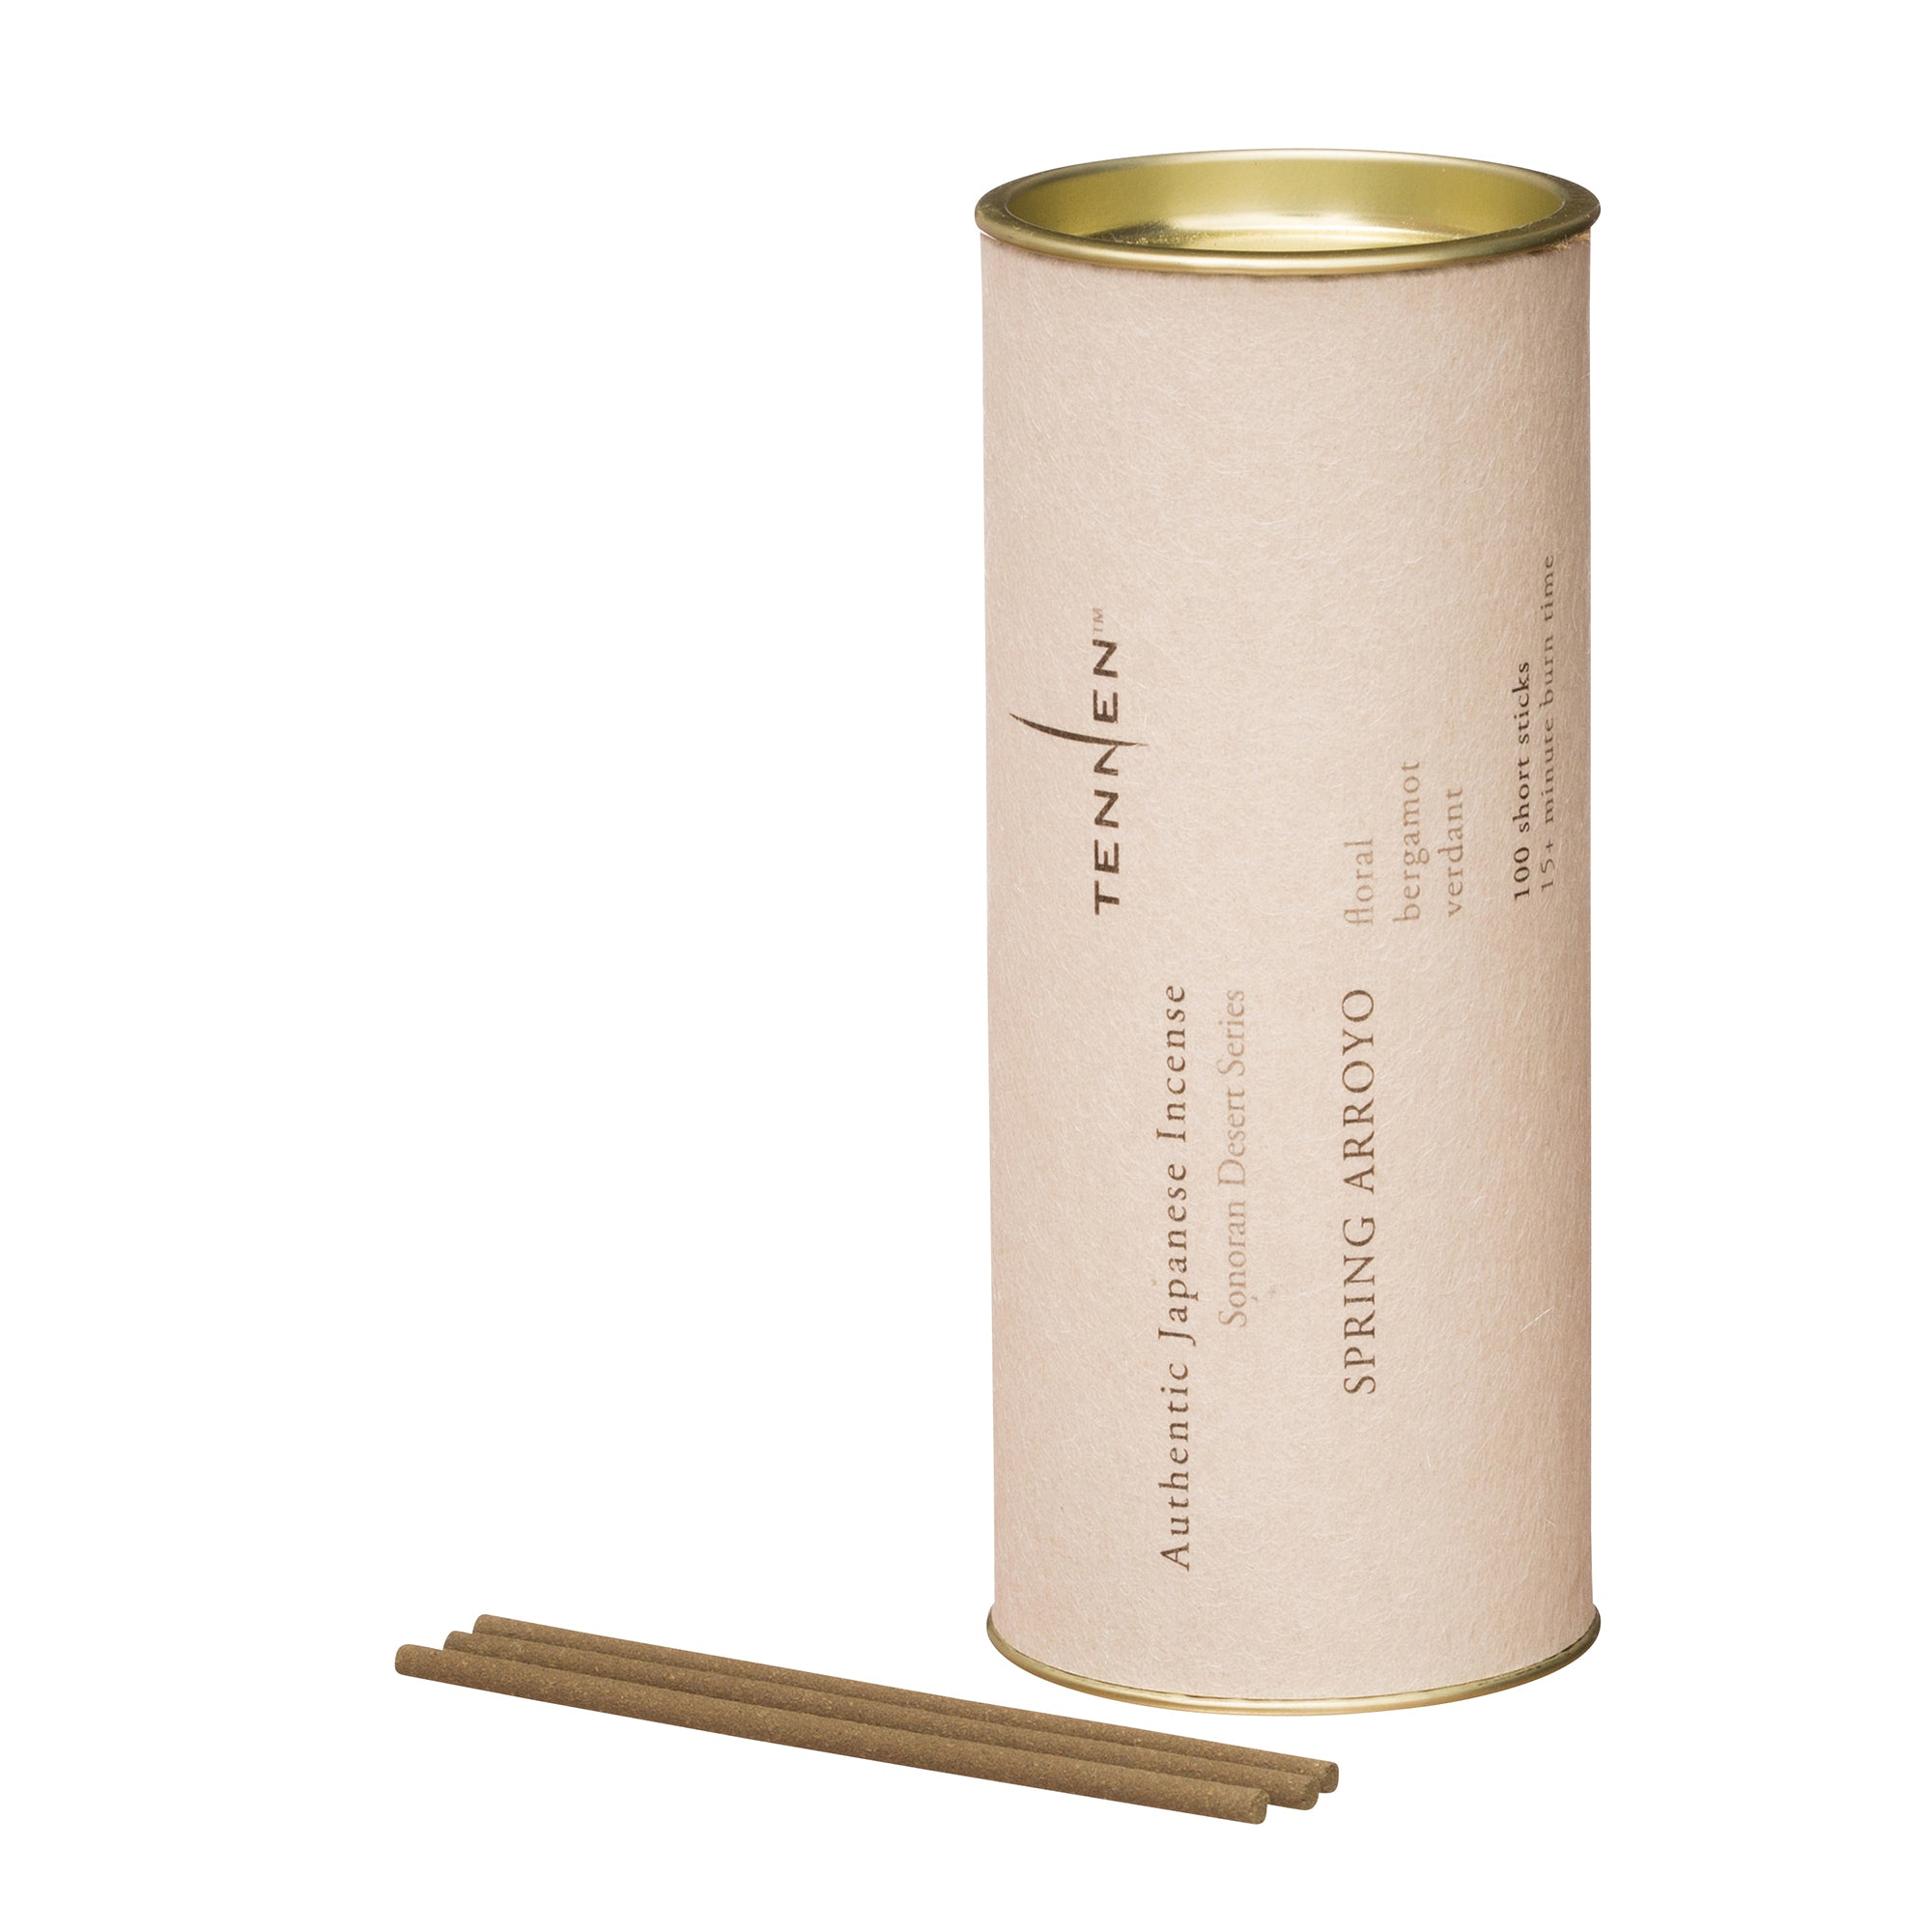 Spring Arroyo Incense Tube by Tennen for Broken English Jewelry